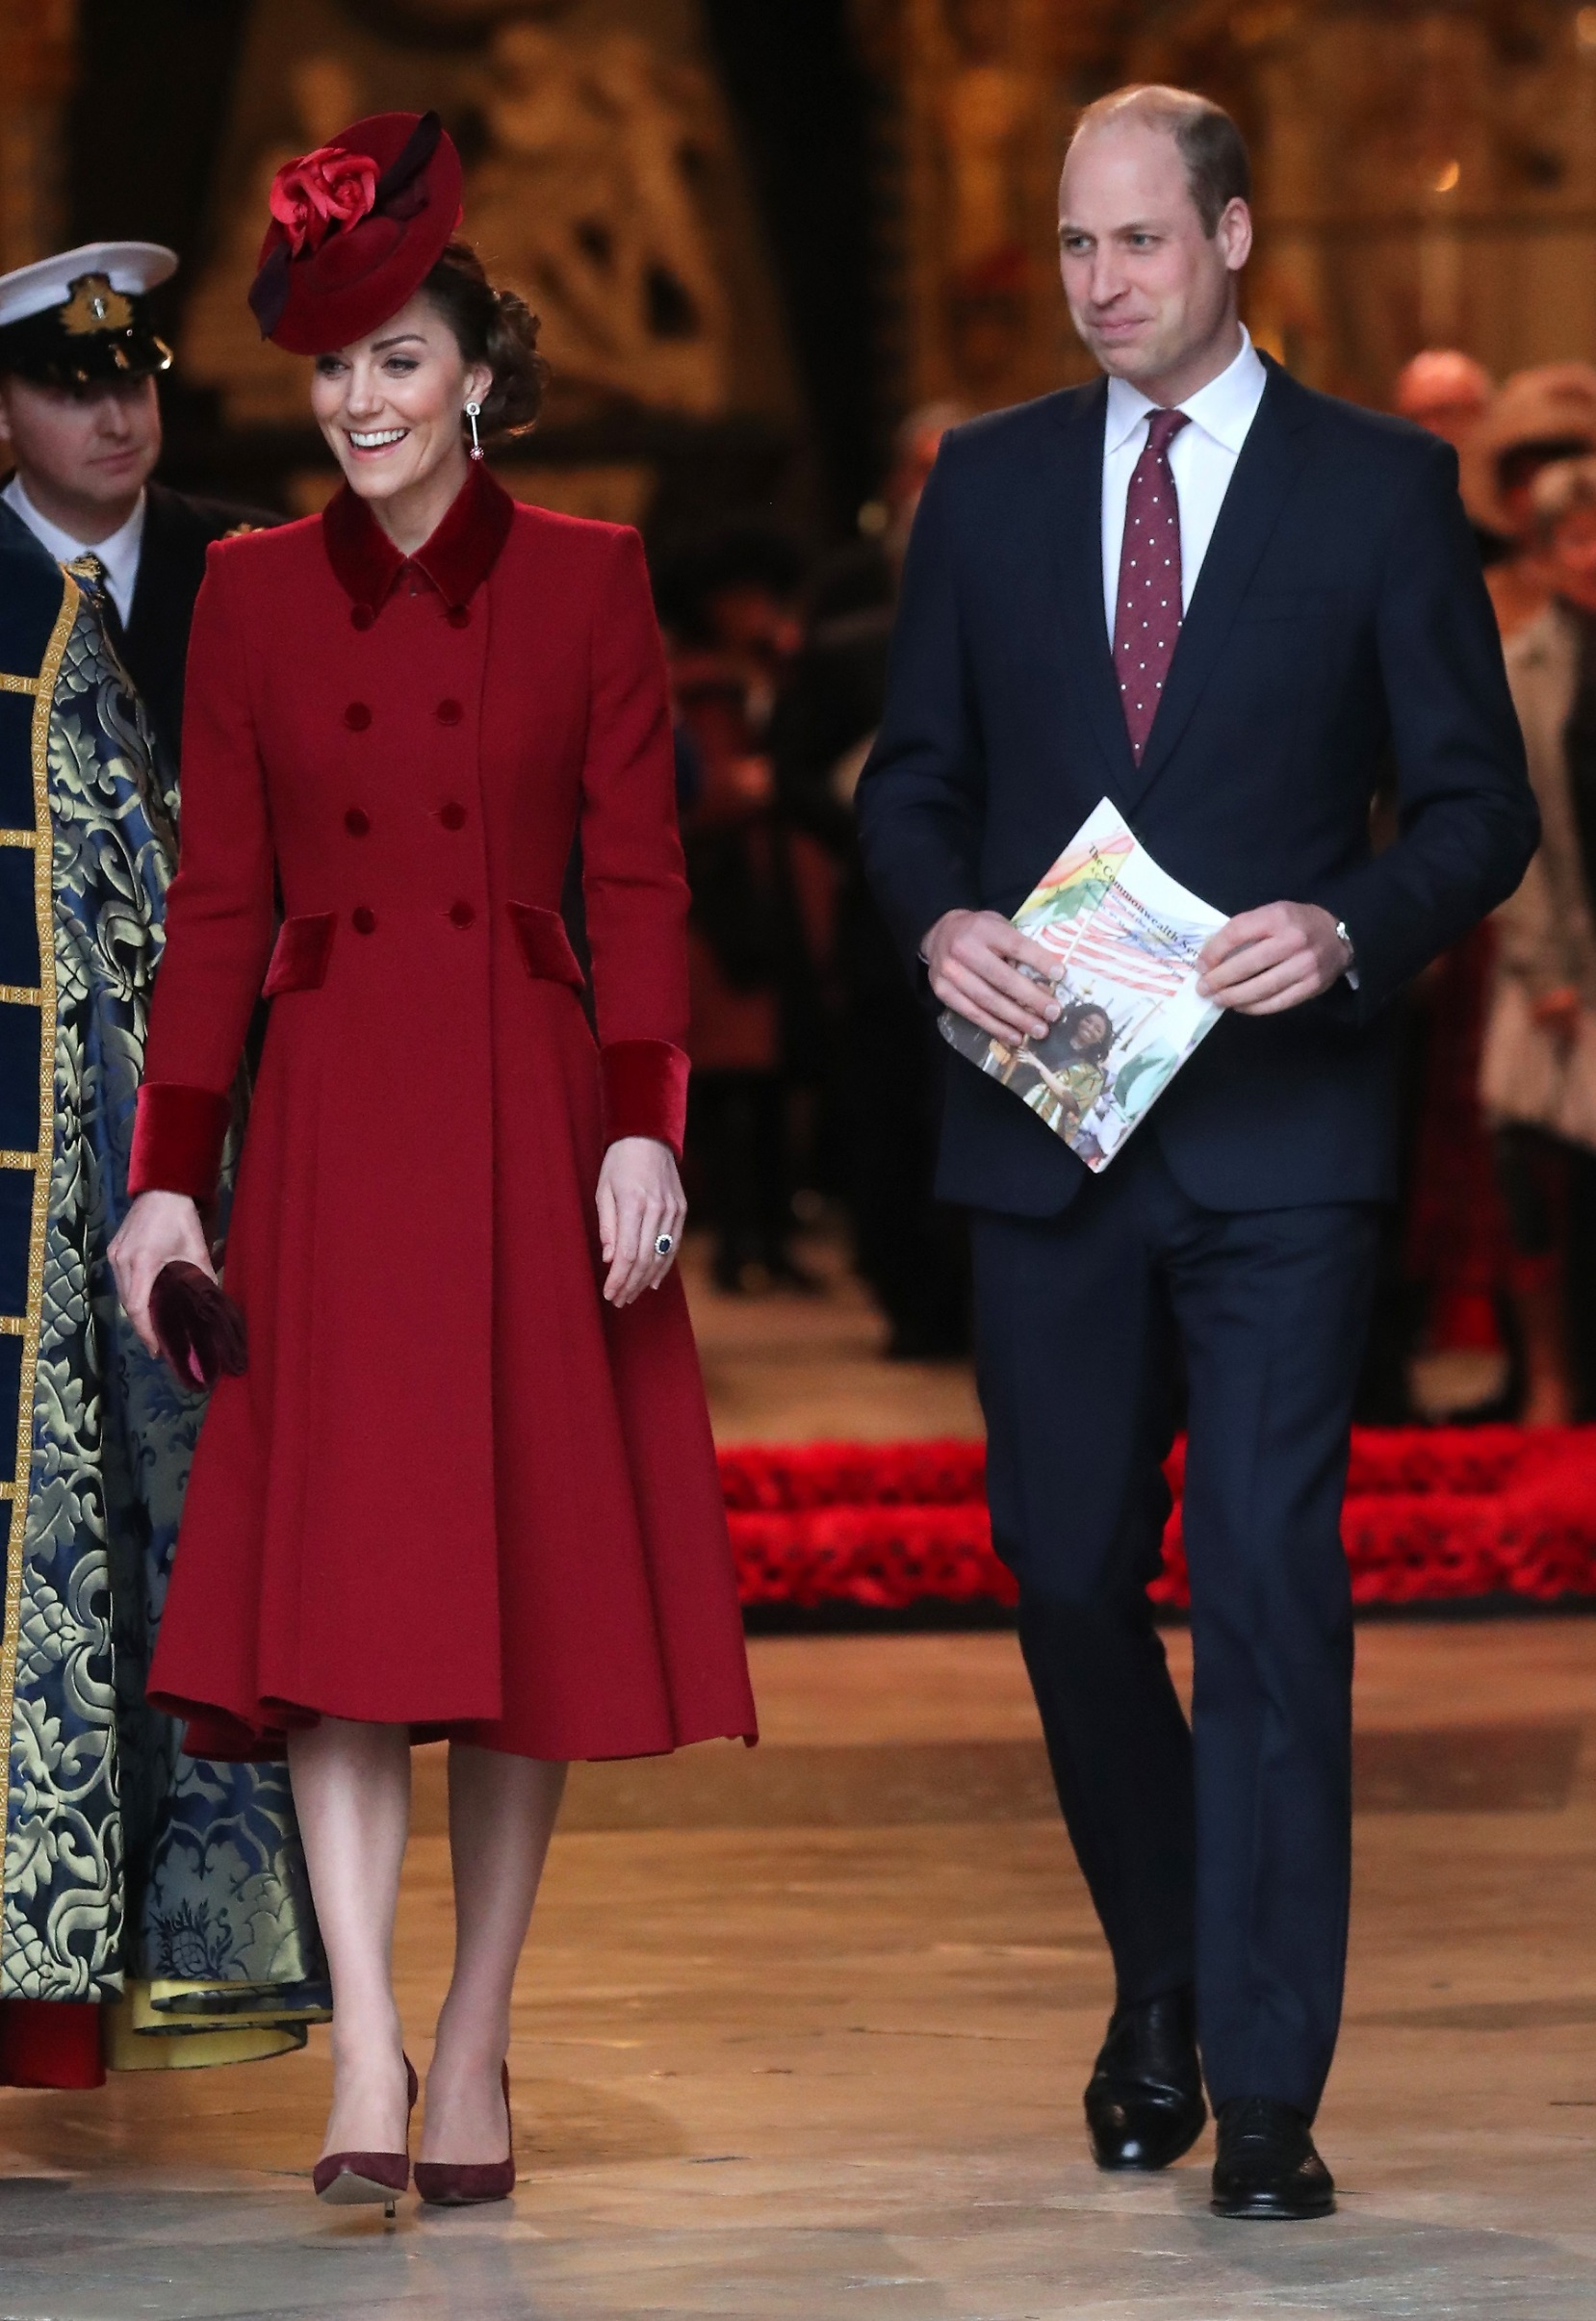 LONDON, ENGLAND - MARCH 09: Catherine, Duchess of Cambridge and Prince William, Duke of Cambridge depart the Commonwealth Day Service 2020 at Westminster Abbey on March 09, 2020 in London, England. The Commonwealth represents 2.4 billion people and 54 countries, working in collaboration towards shared economic, environmental, social and democratic goals. (Photo by Chris Jackson/Getty Images)